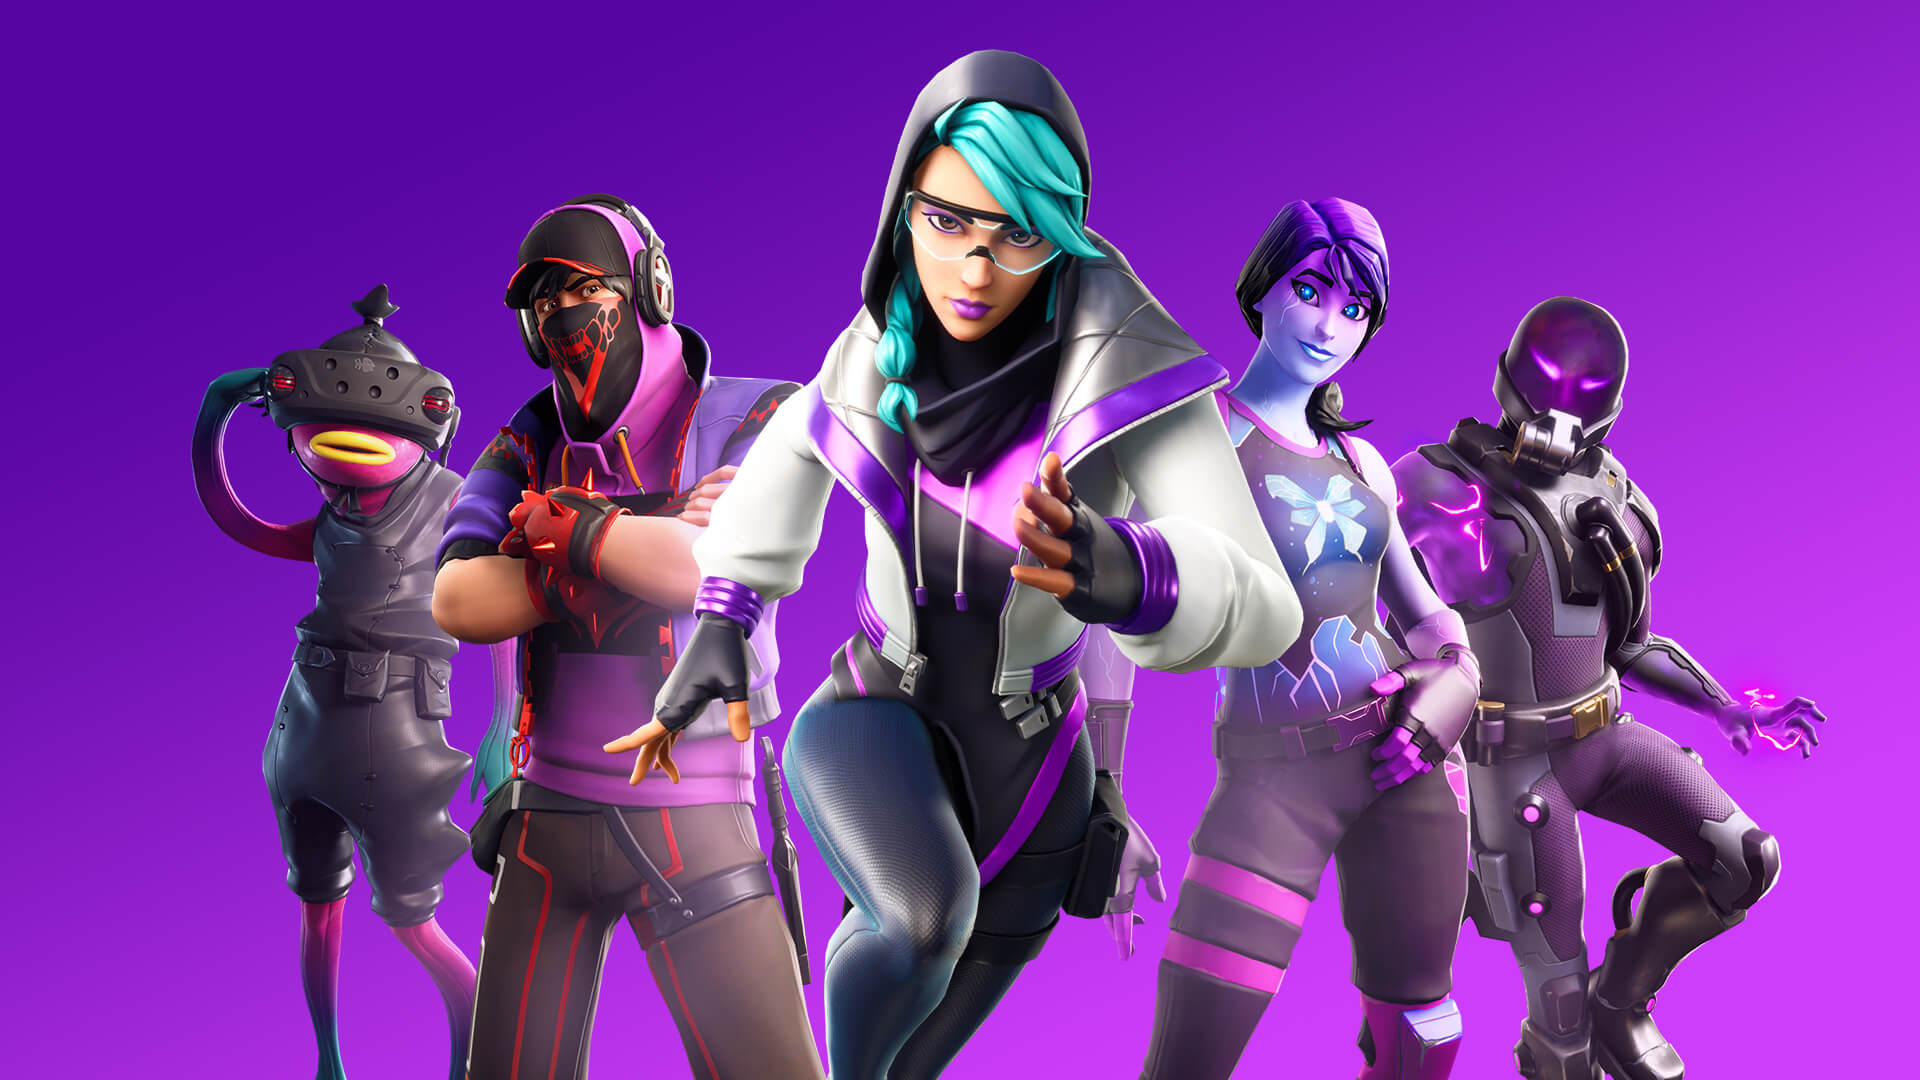 Loserfruit's Fortnite set rumored to be released June 3